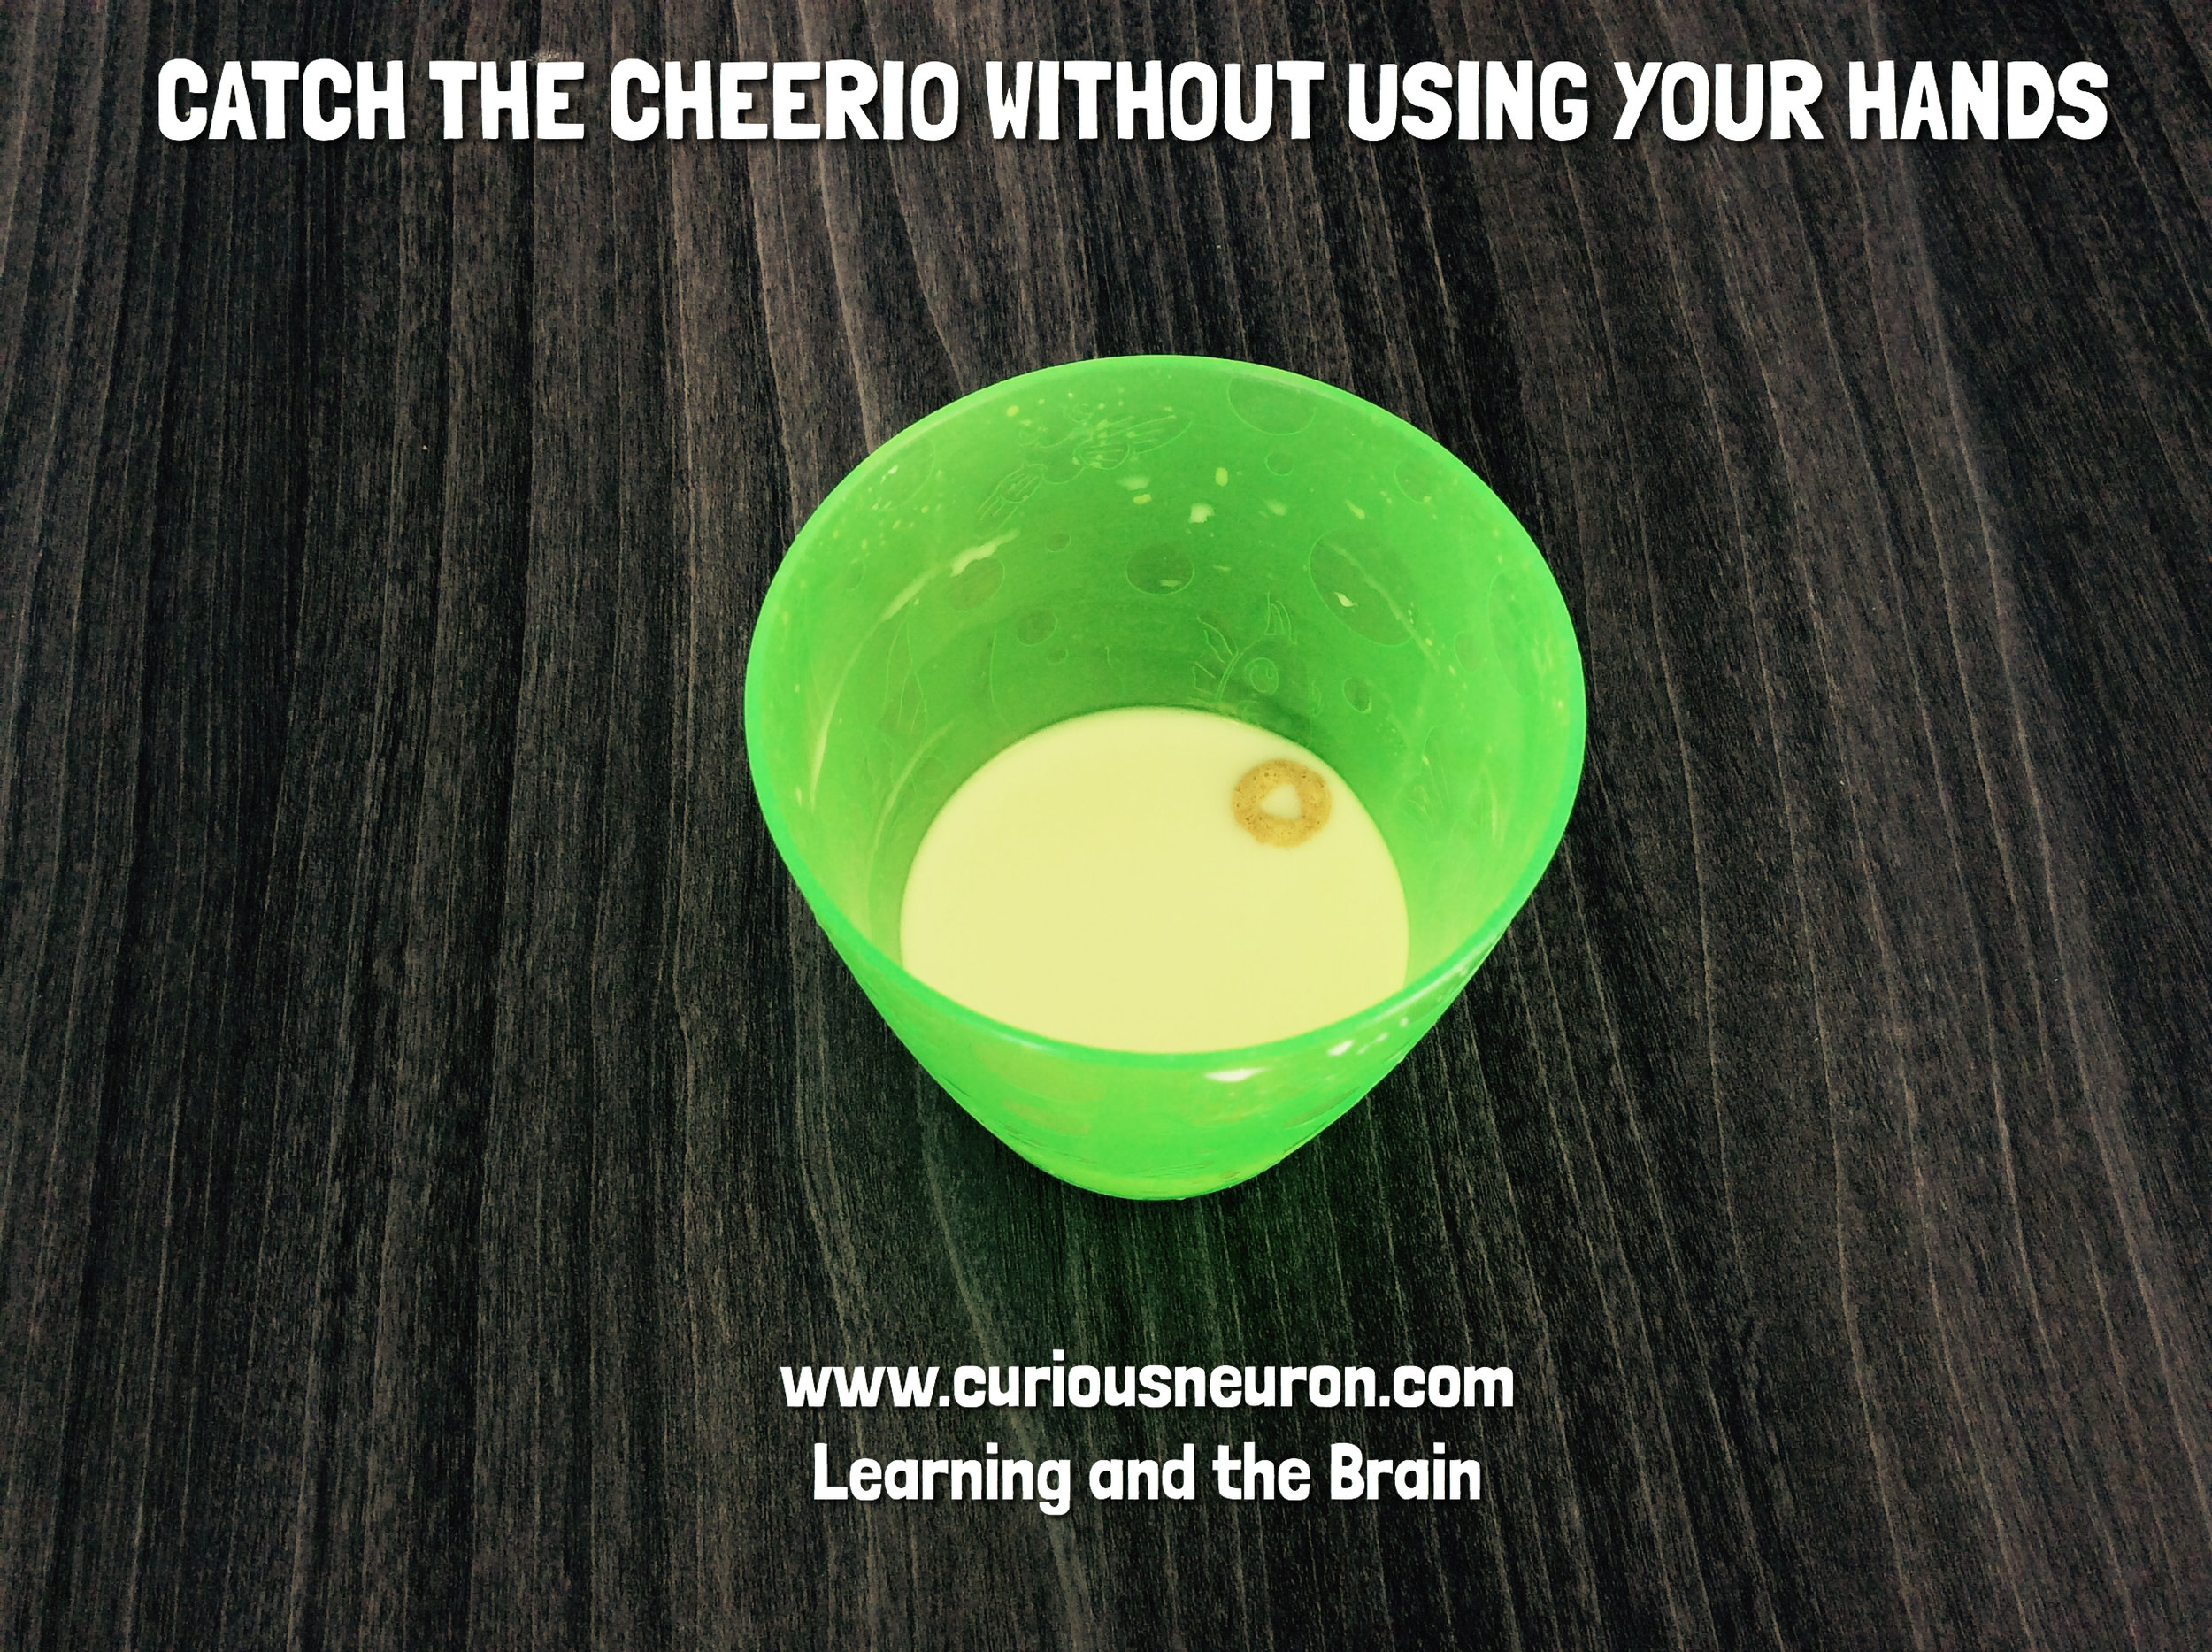 """My toddler would often leave some milk in her cup and it was a struggle to get her to finish. So I decided to throw a Cheerio inside and ask her """"Can you eat the Cheerio without using your hands?"""". This became a fun game and now, not only does she finish her milk but she asks to play the game. There was no link to development in this game....just a mom trying to get her child to finish their milk!"""